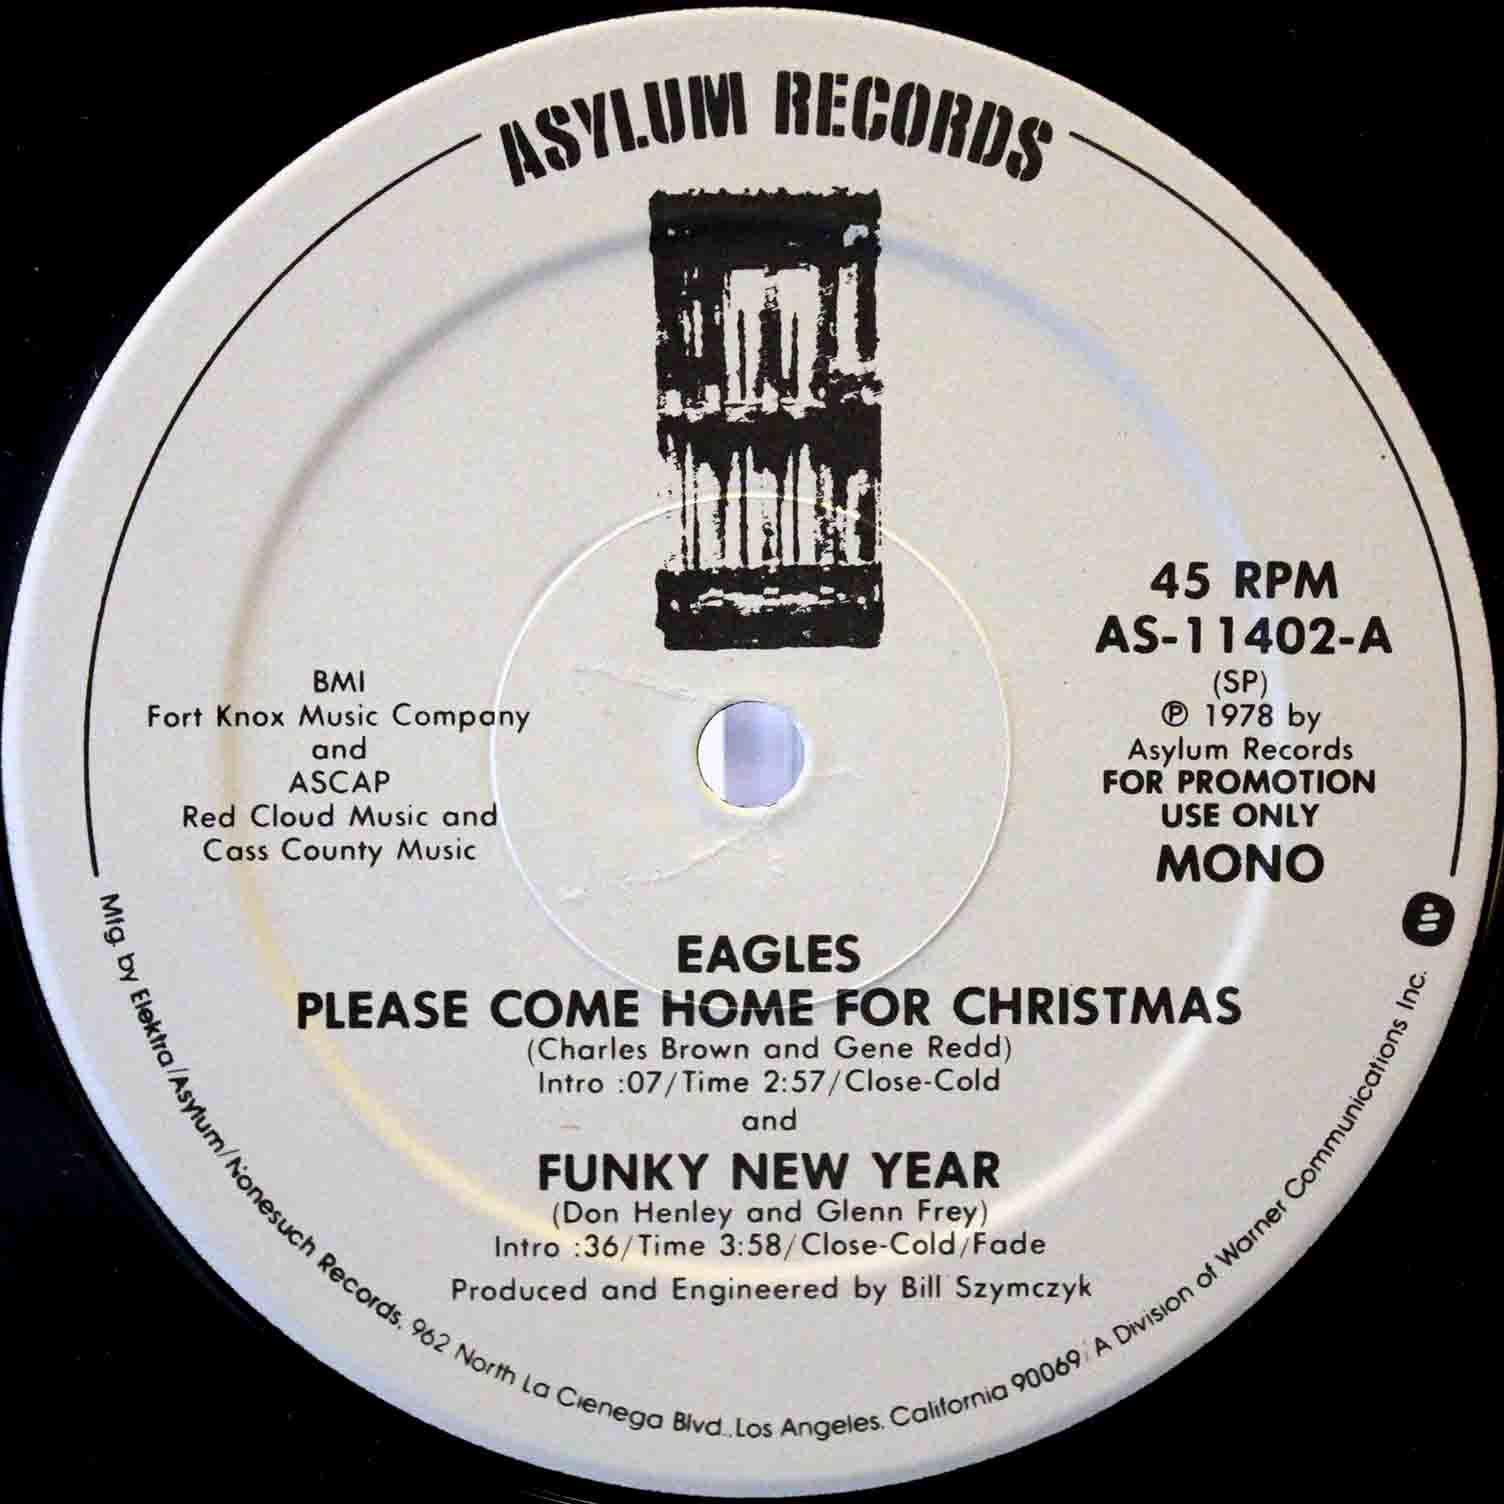 Eagles – Please Come Home For Christmas 04